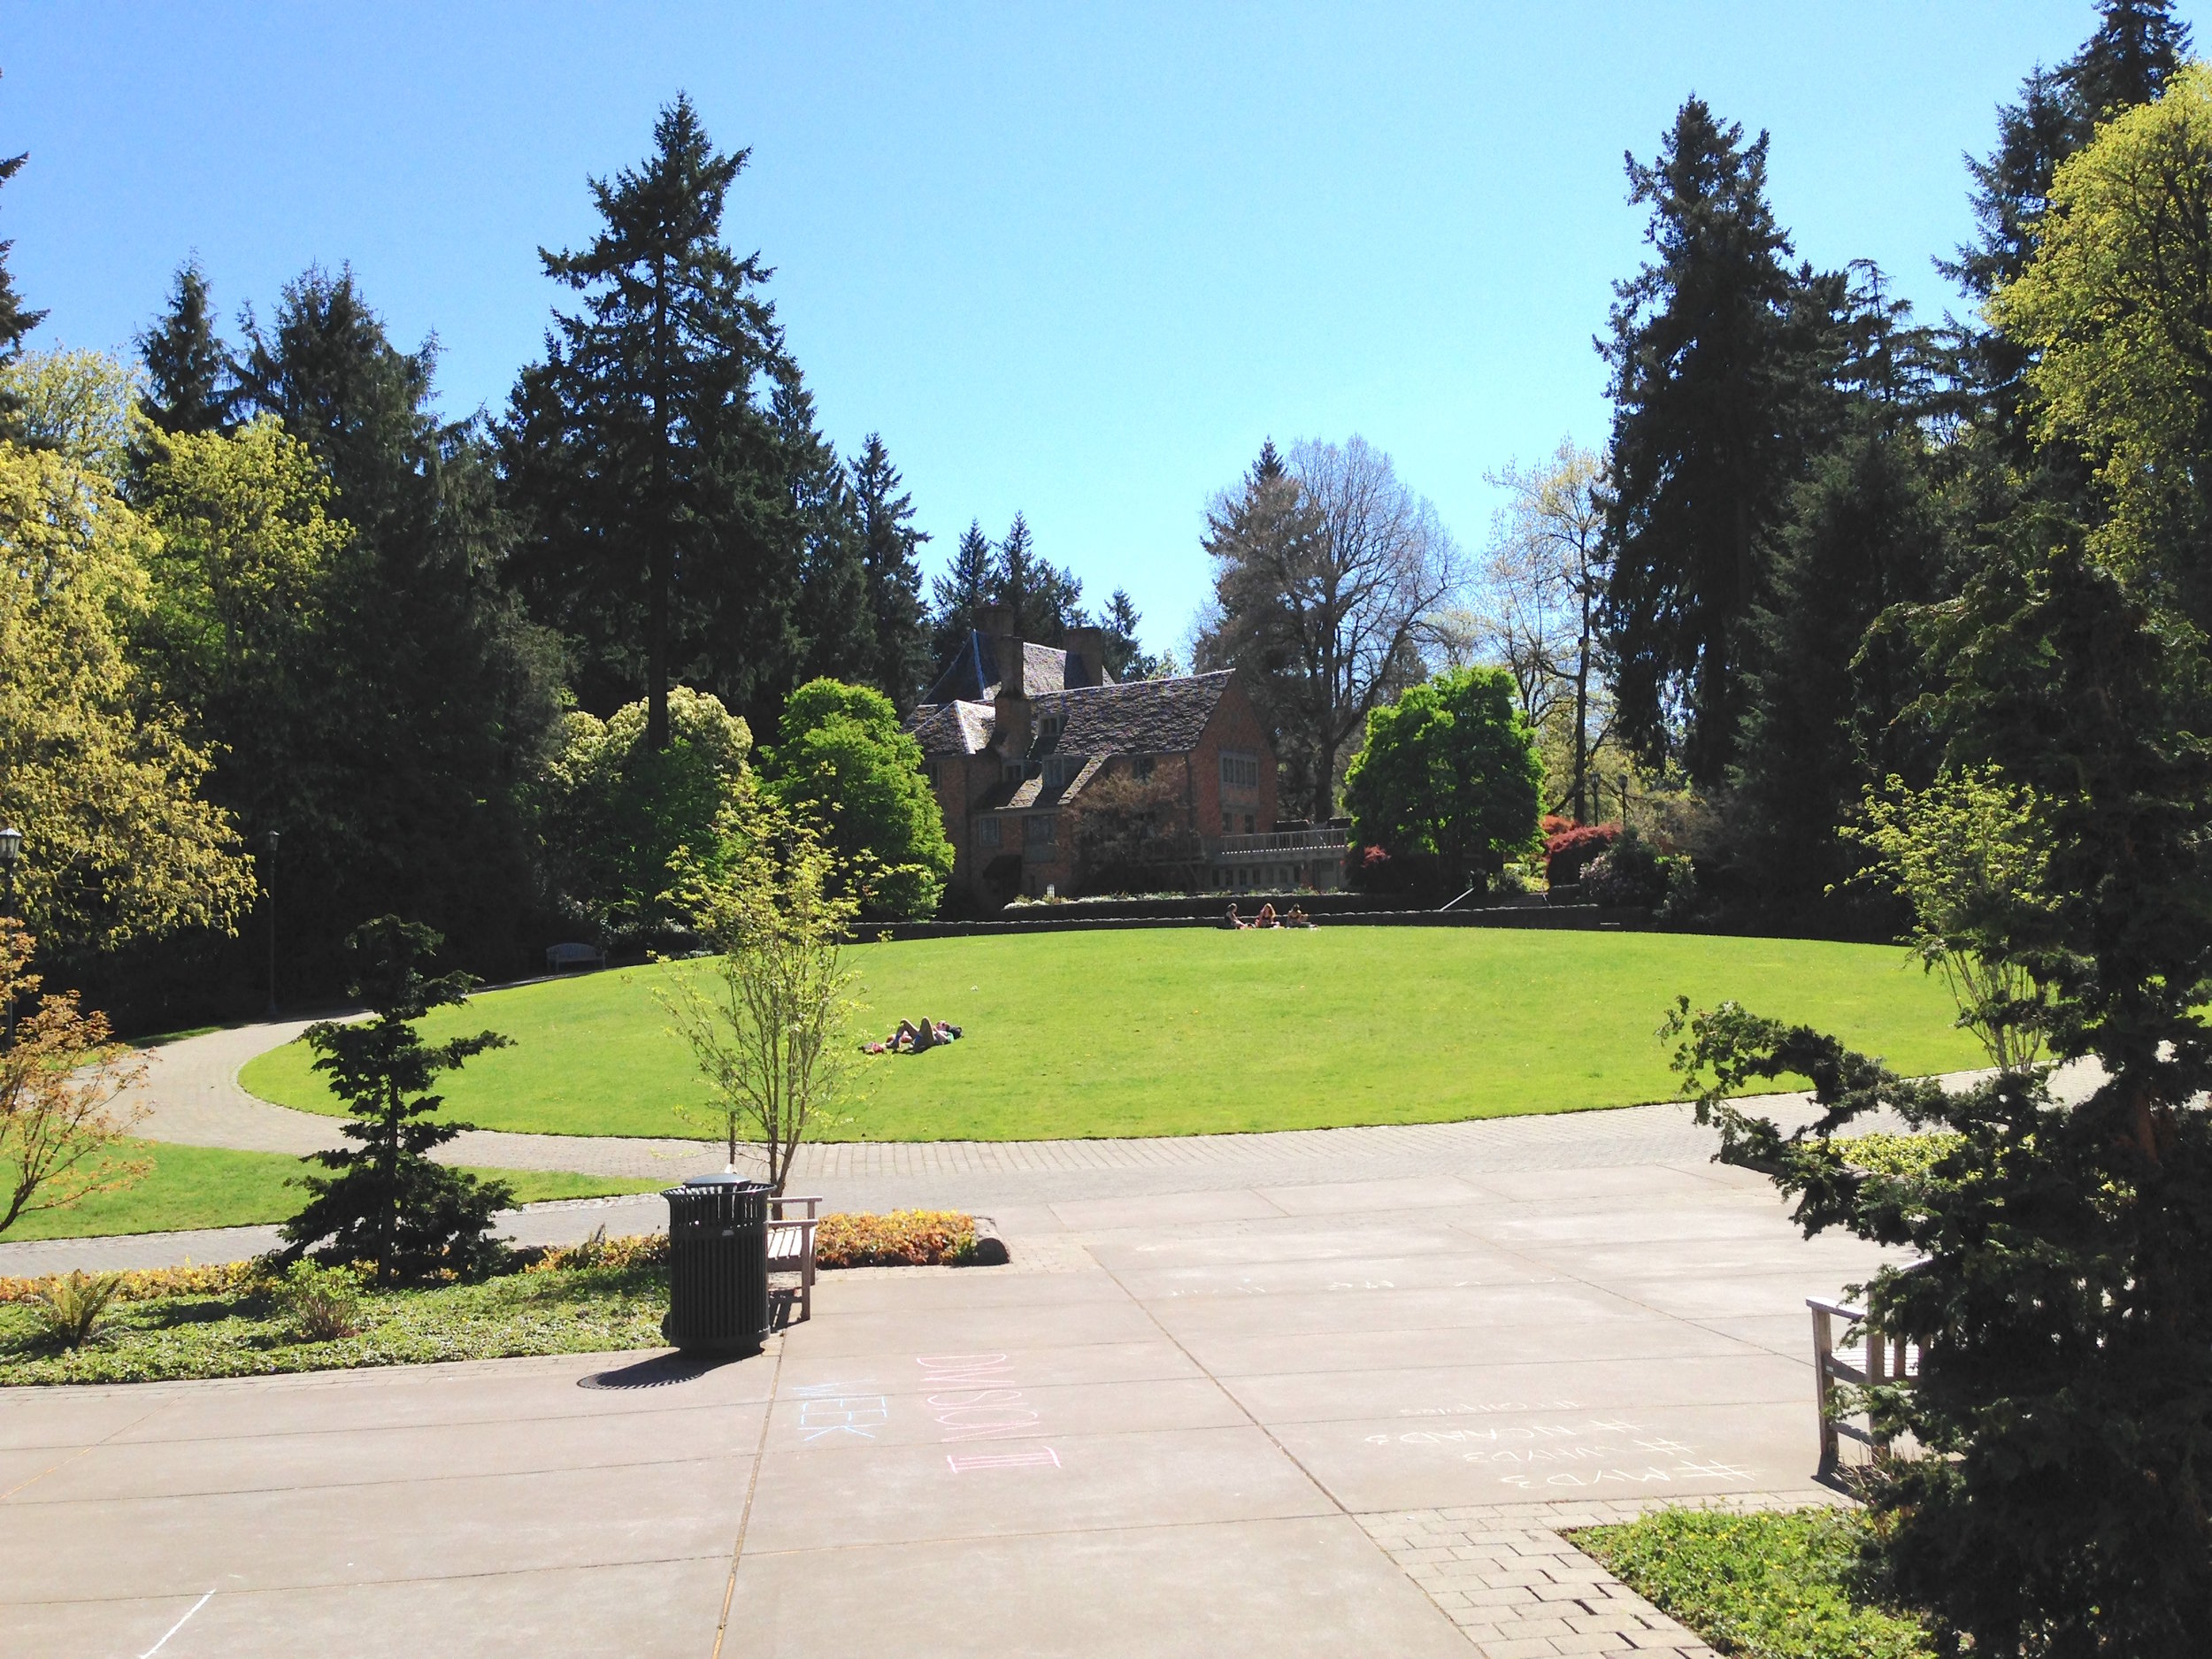 Lewis & Clark—grounds and president's house